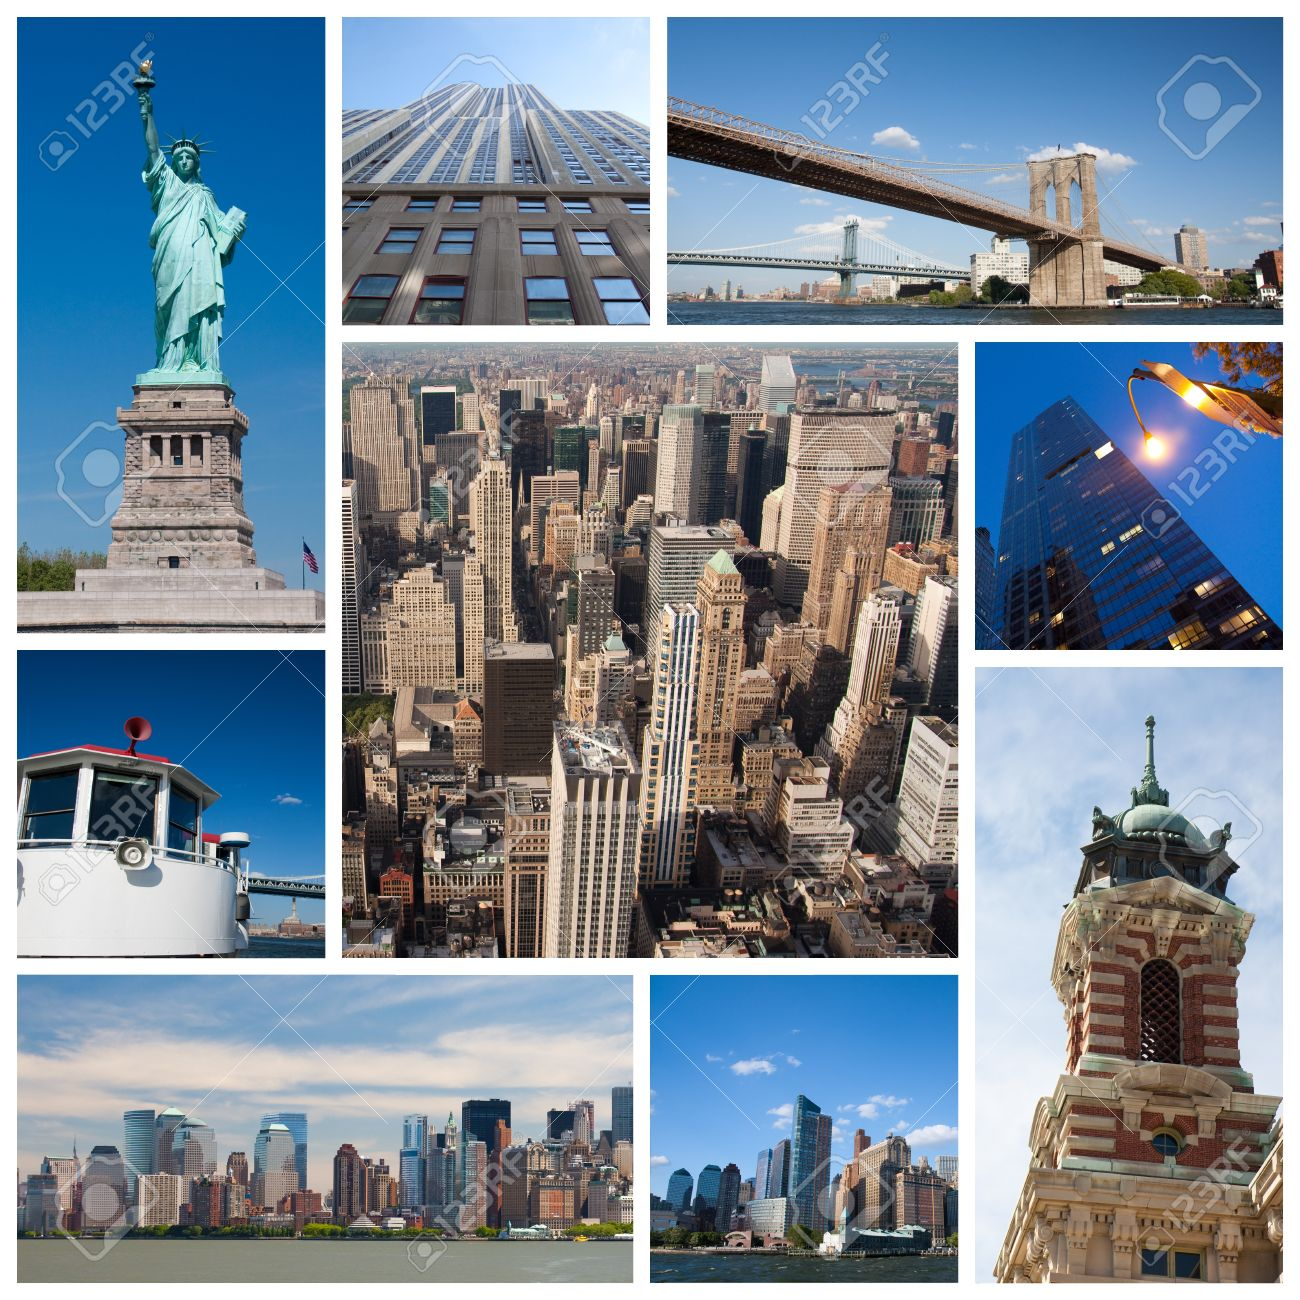 New York City Landmarks And Tourist Destinations Collage – Tourist Attractions New York City